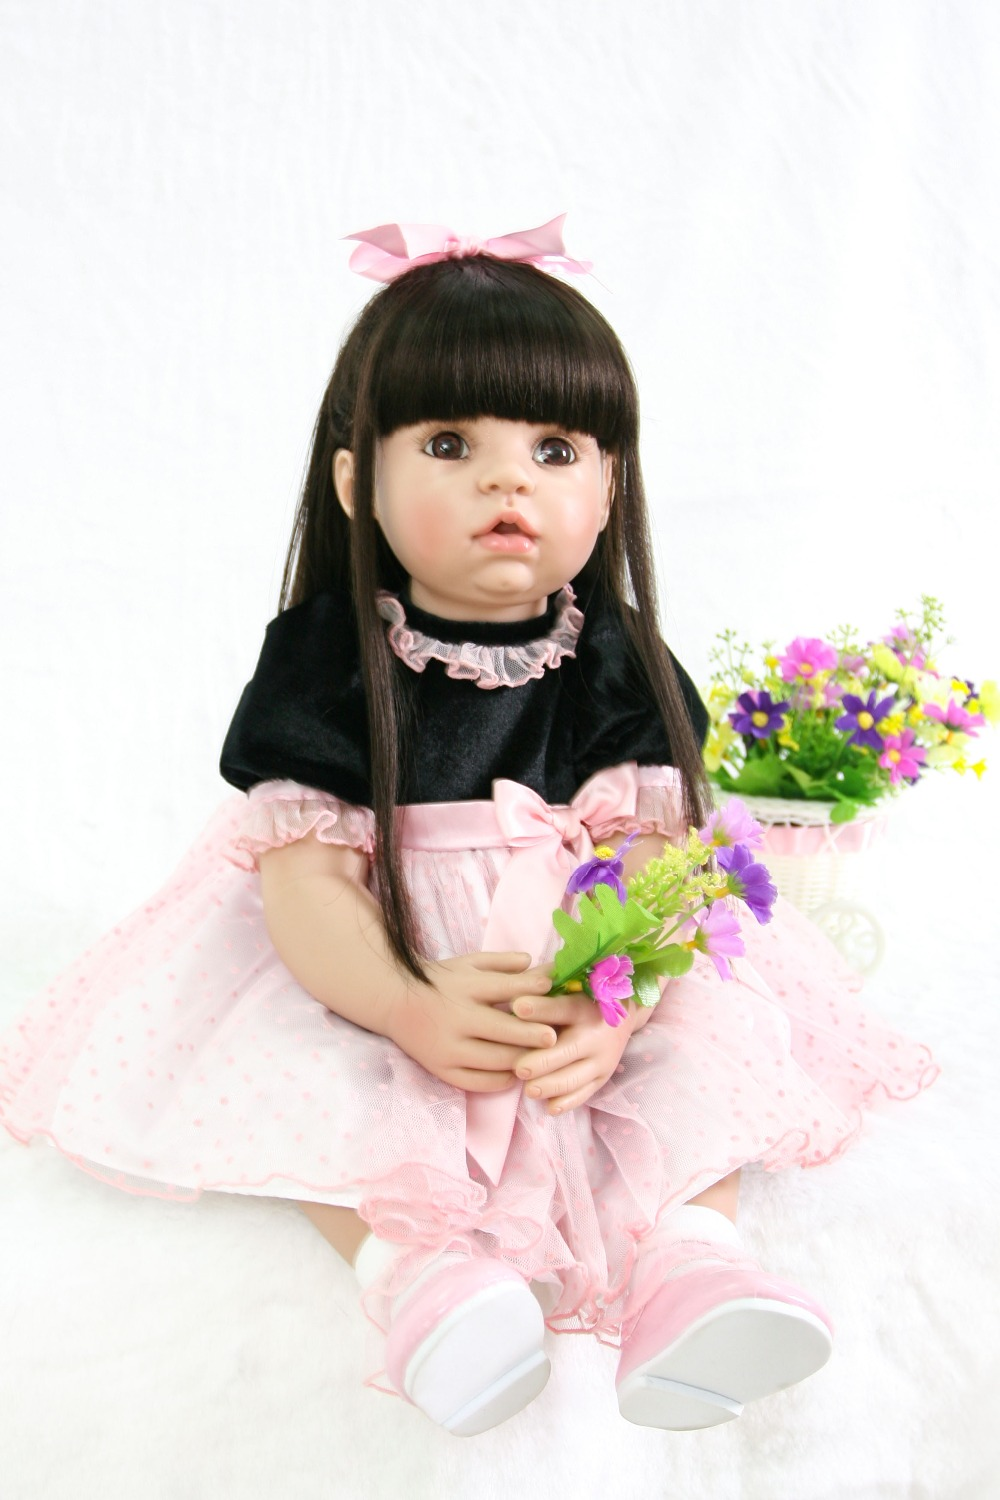 60cm Silicone Reborn Baby Doll Toys Like Real 24inch Vinyl black longhair Princess Toddler Babies kids birthday Xmas gifts60cm Silicone Reborn Baby Doll Toys Like Real 24inch Vinyl black longhair Princess Toddler Babies kids birthday Xmas gifts